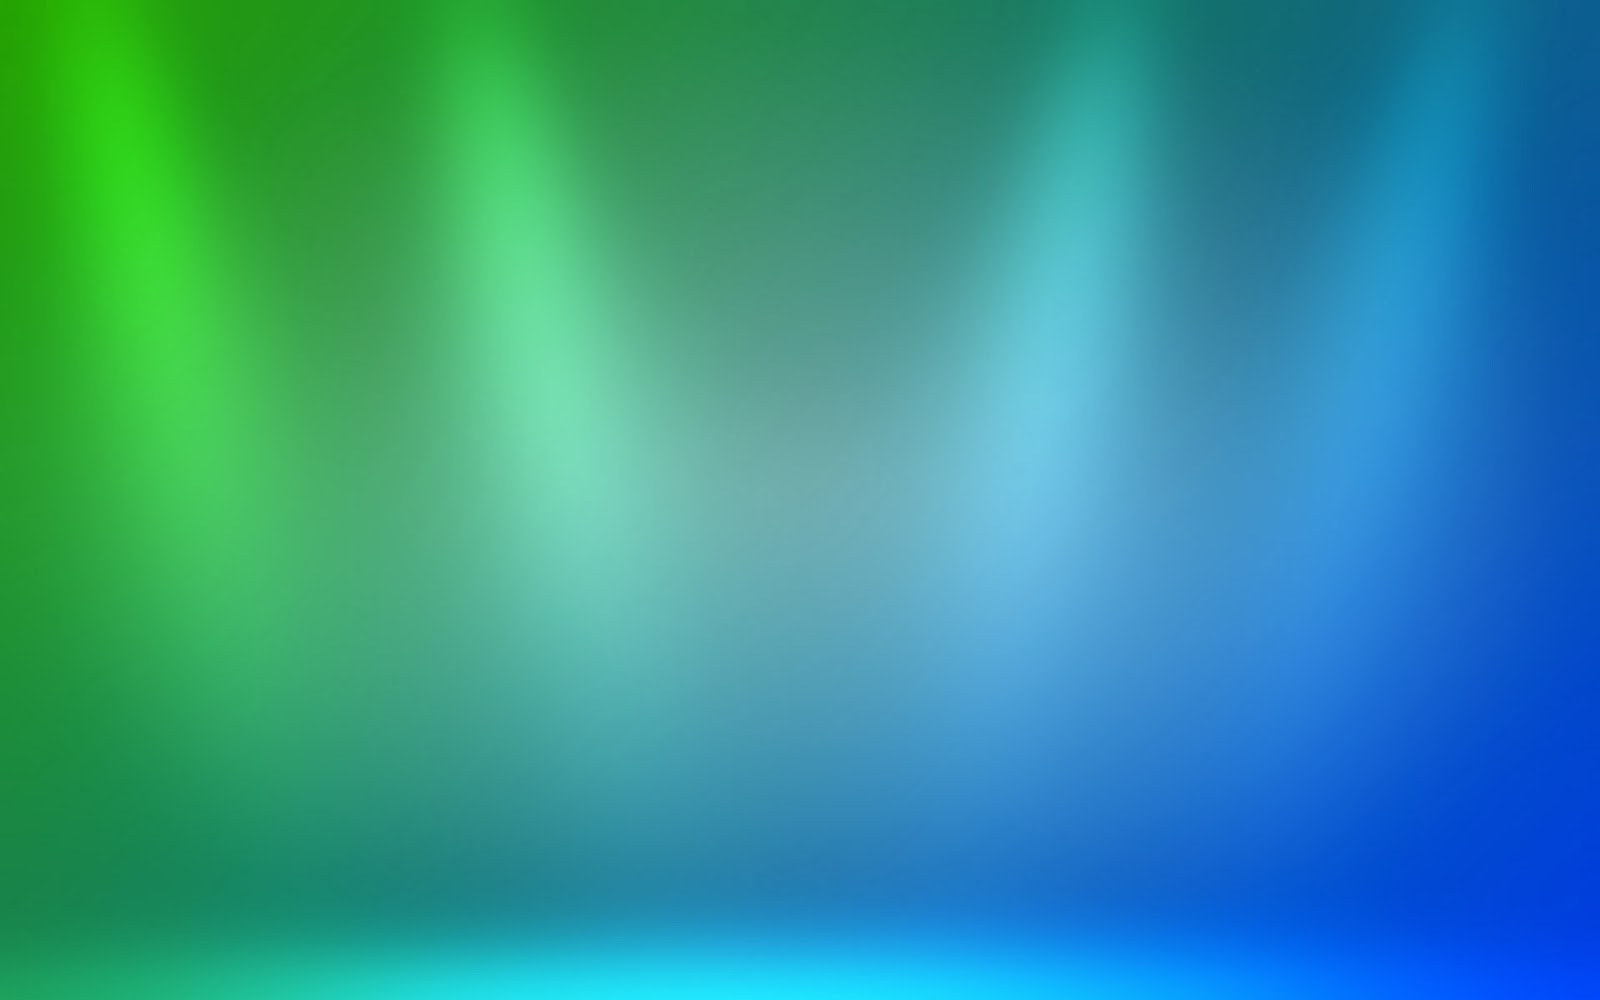 Wallpaper Green Blue